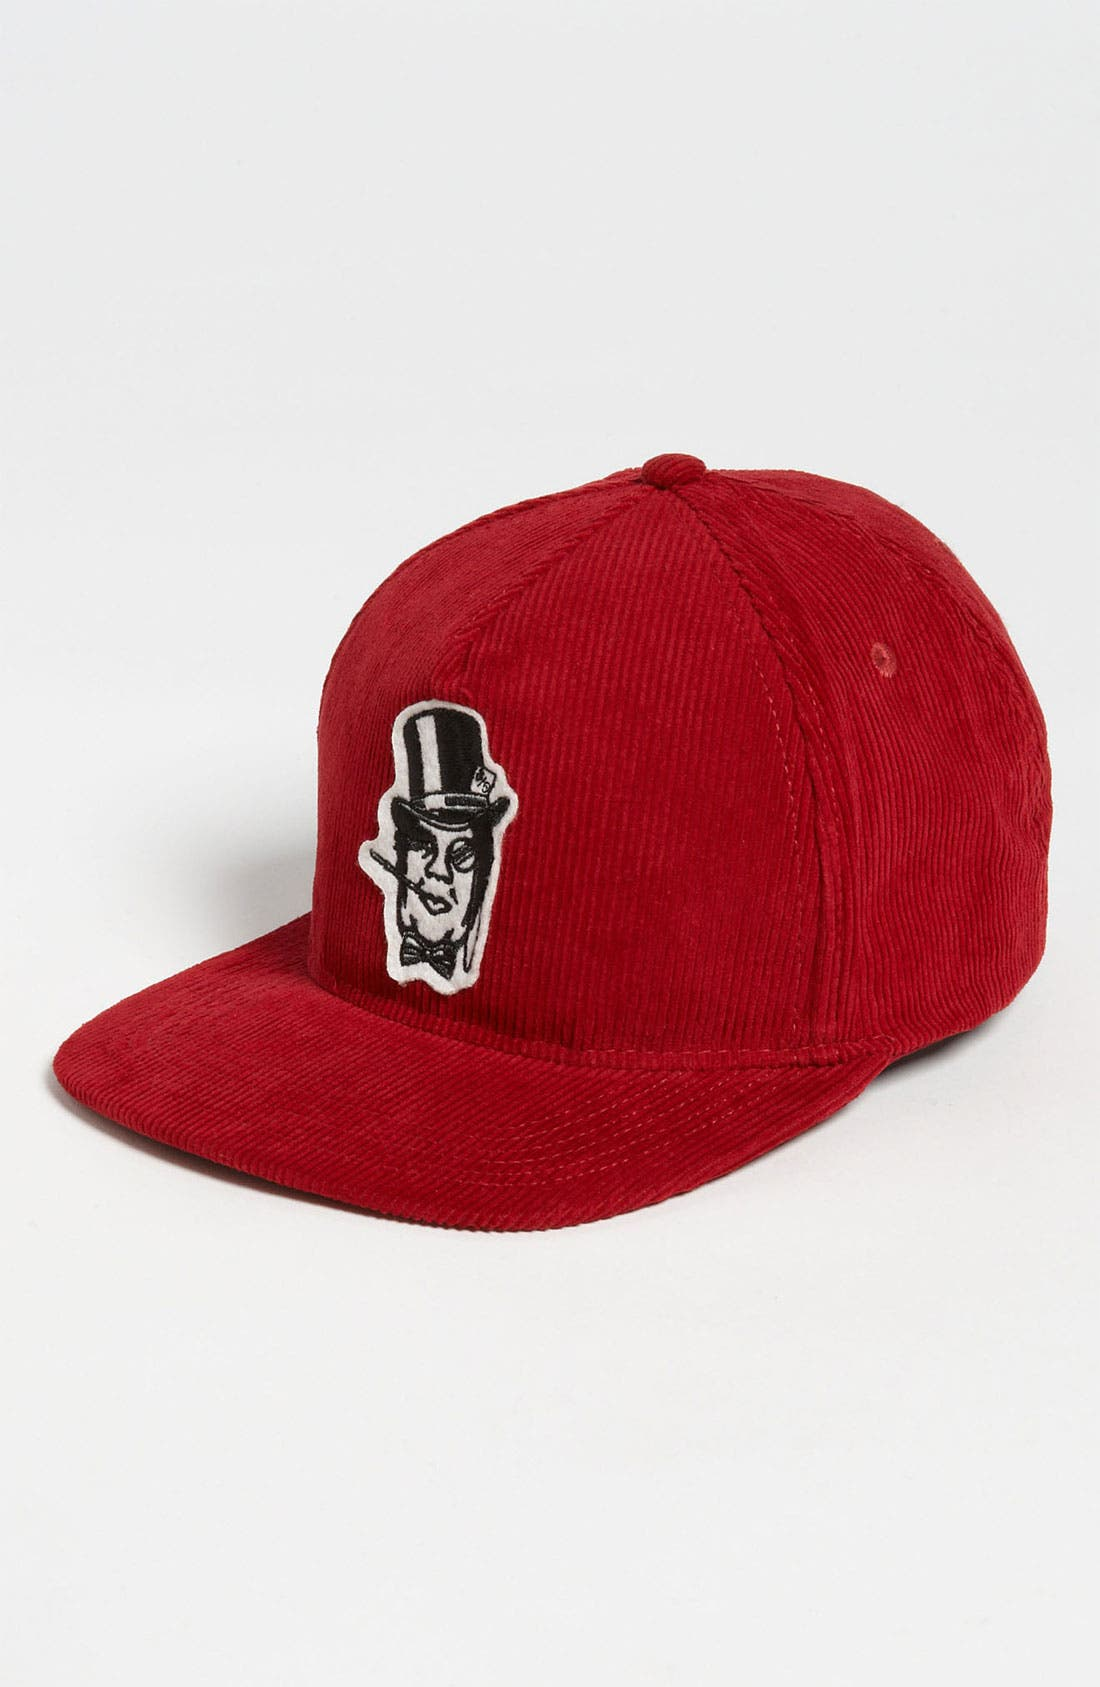 Alternate Image 1 Selected - Obey 'Bourgeois Andre' Corduroy Snapback Baseball Cap